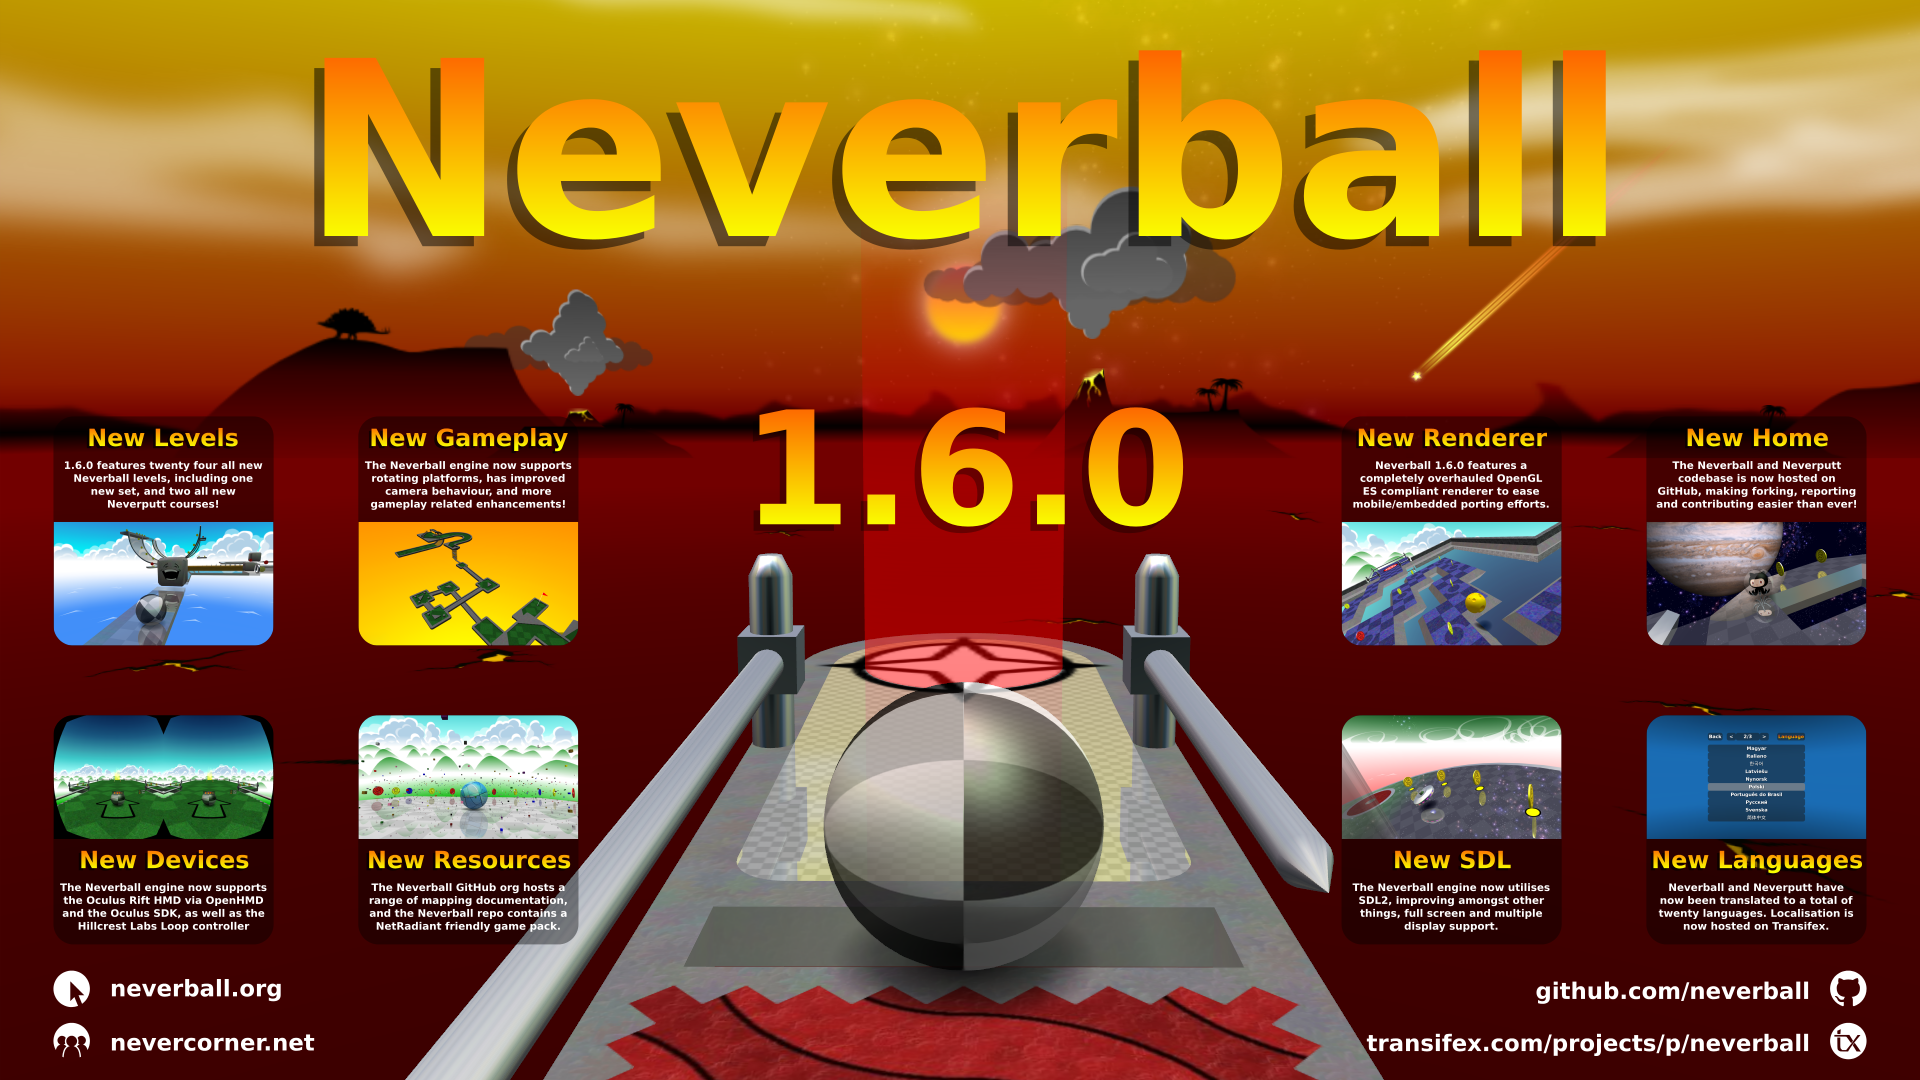 http://neverball.org/images/neverball_poster_1.6.0.png